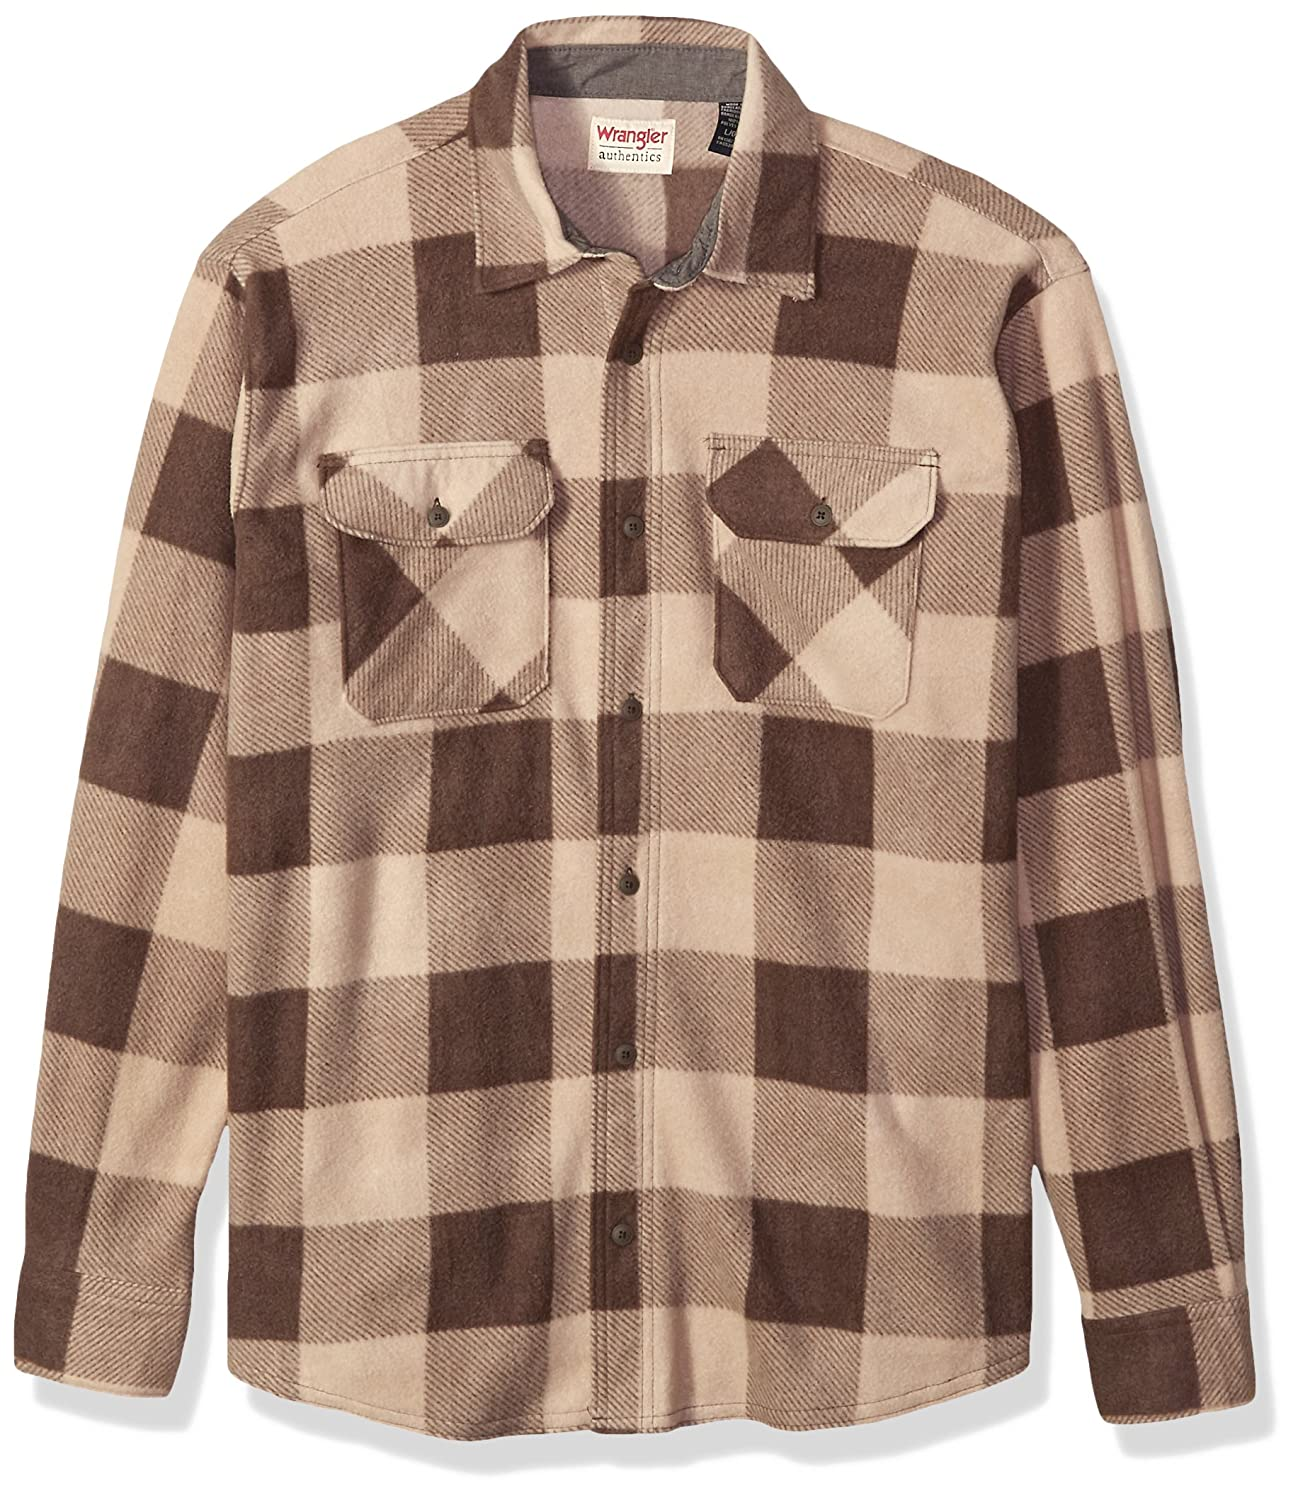 Wrangler Mens Authentics Long Sleeve Plaid Fleece Shirt Wrangler Authentics Men' s Sportswear